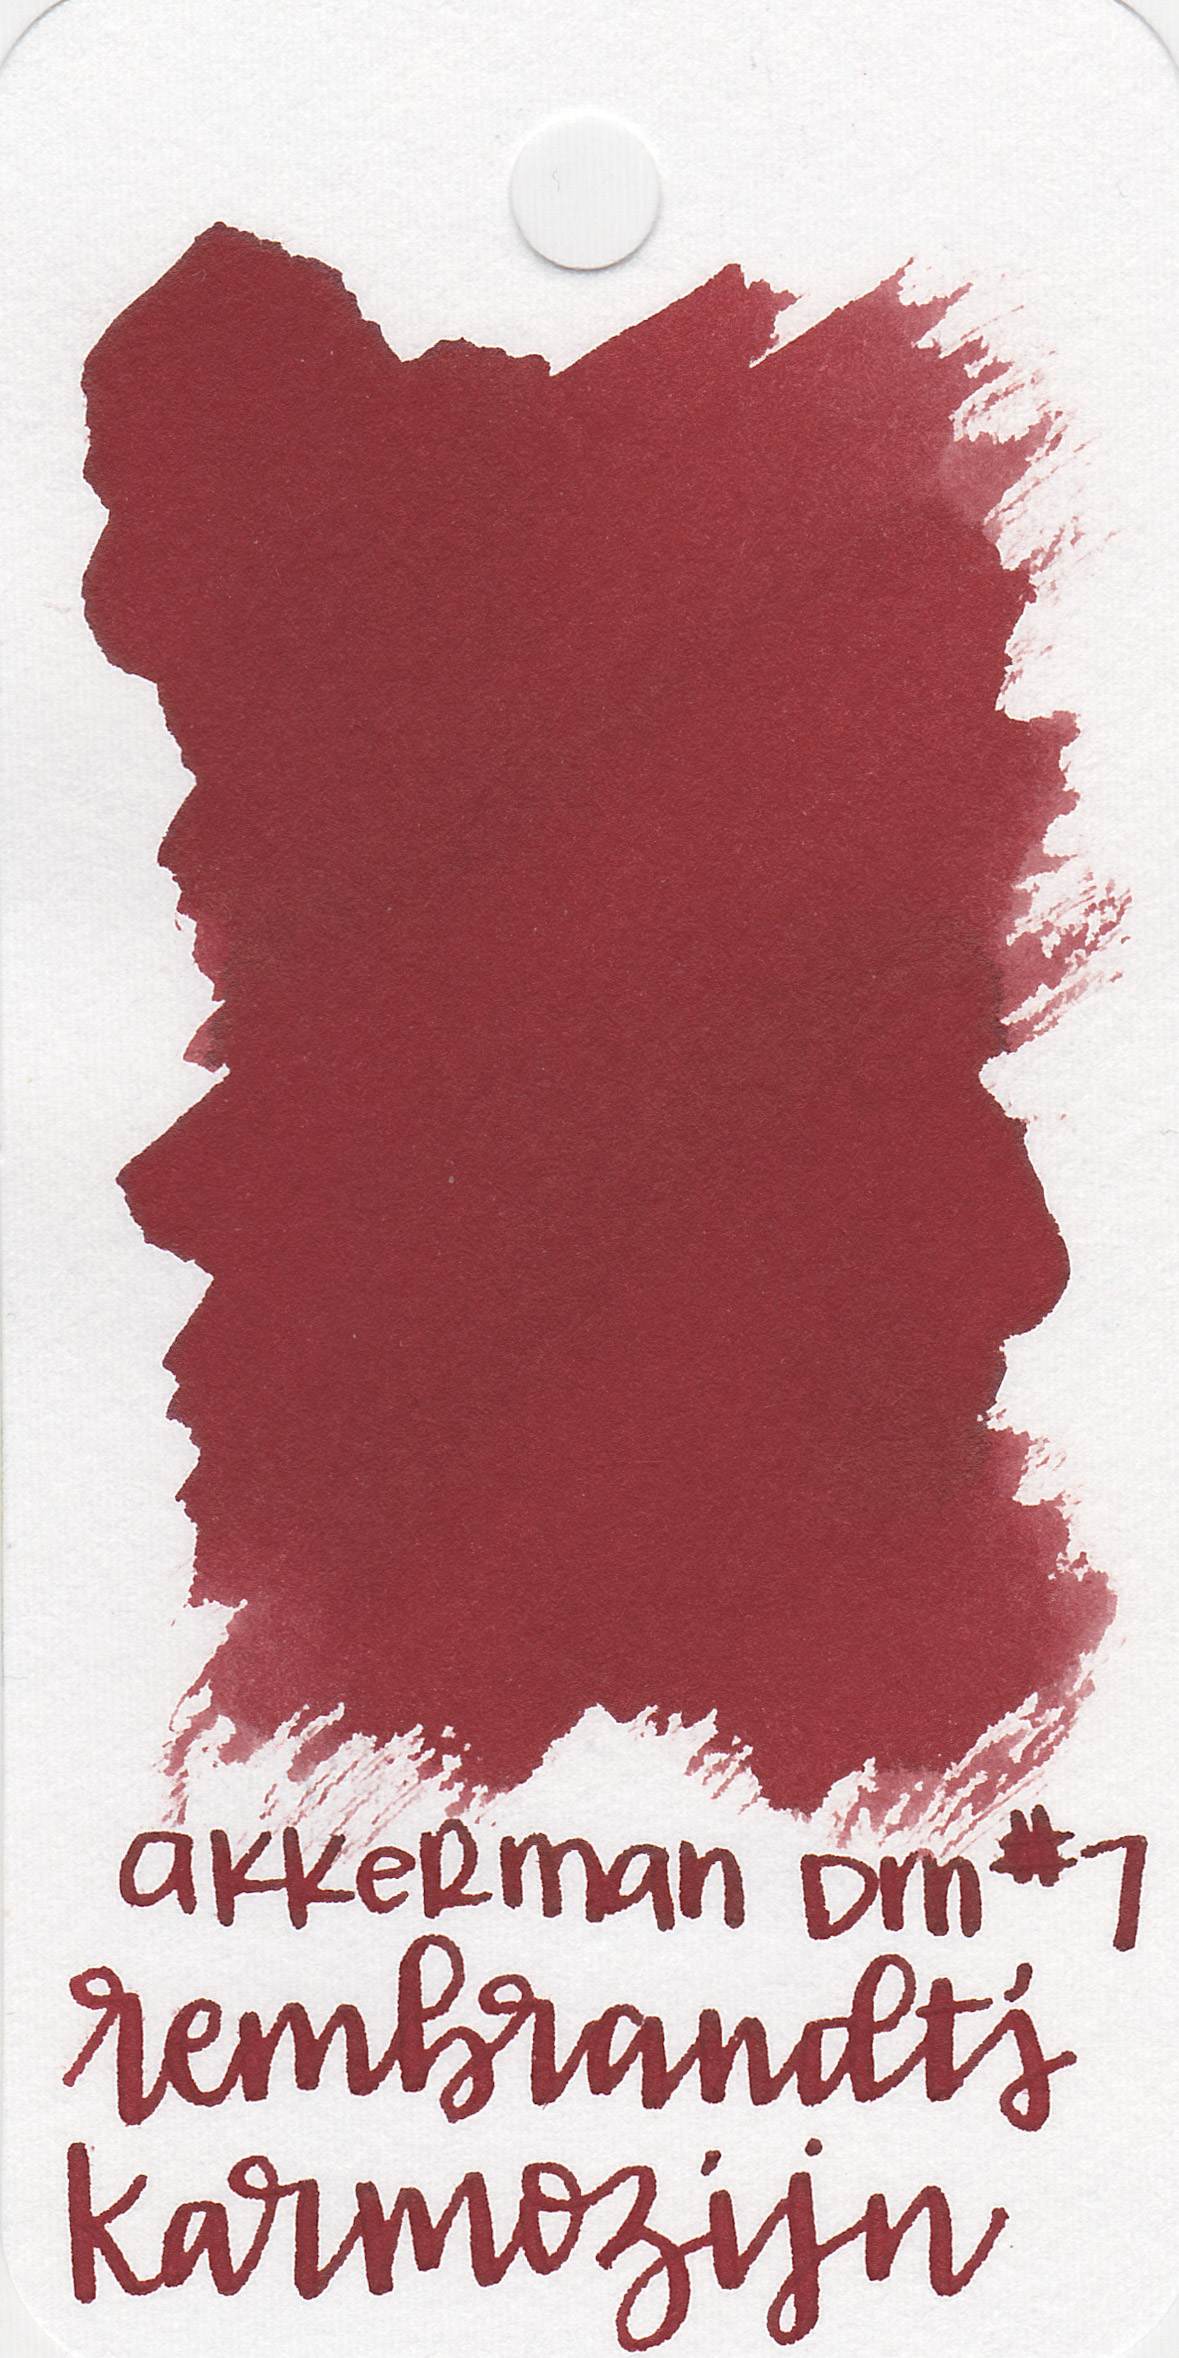 The color: - RK is a lovely dark red.